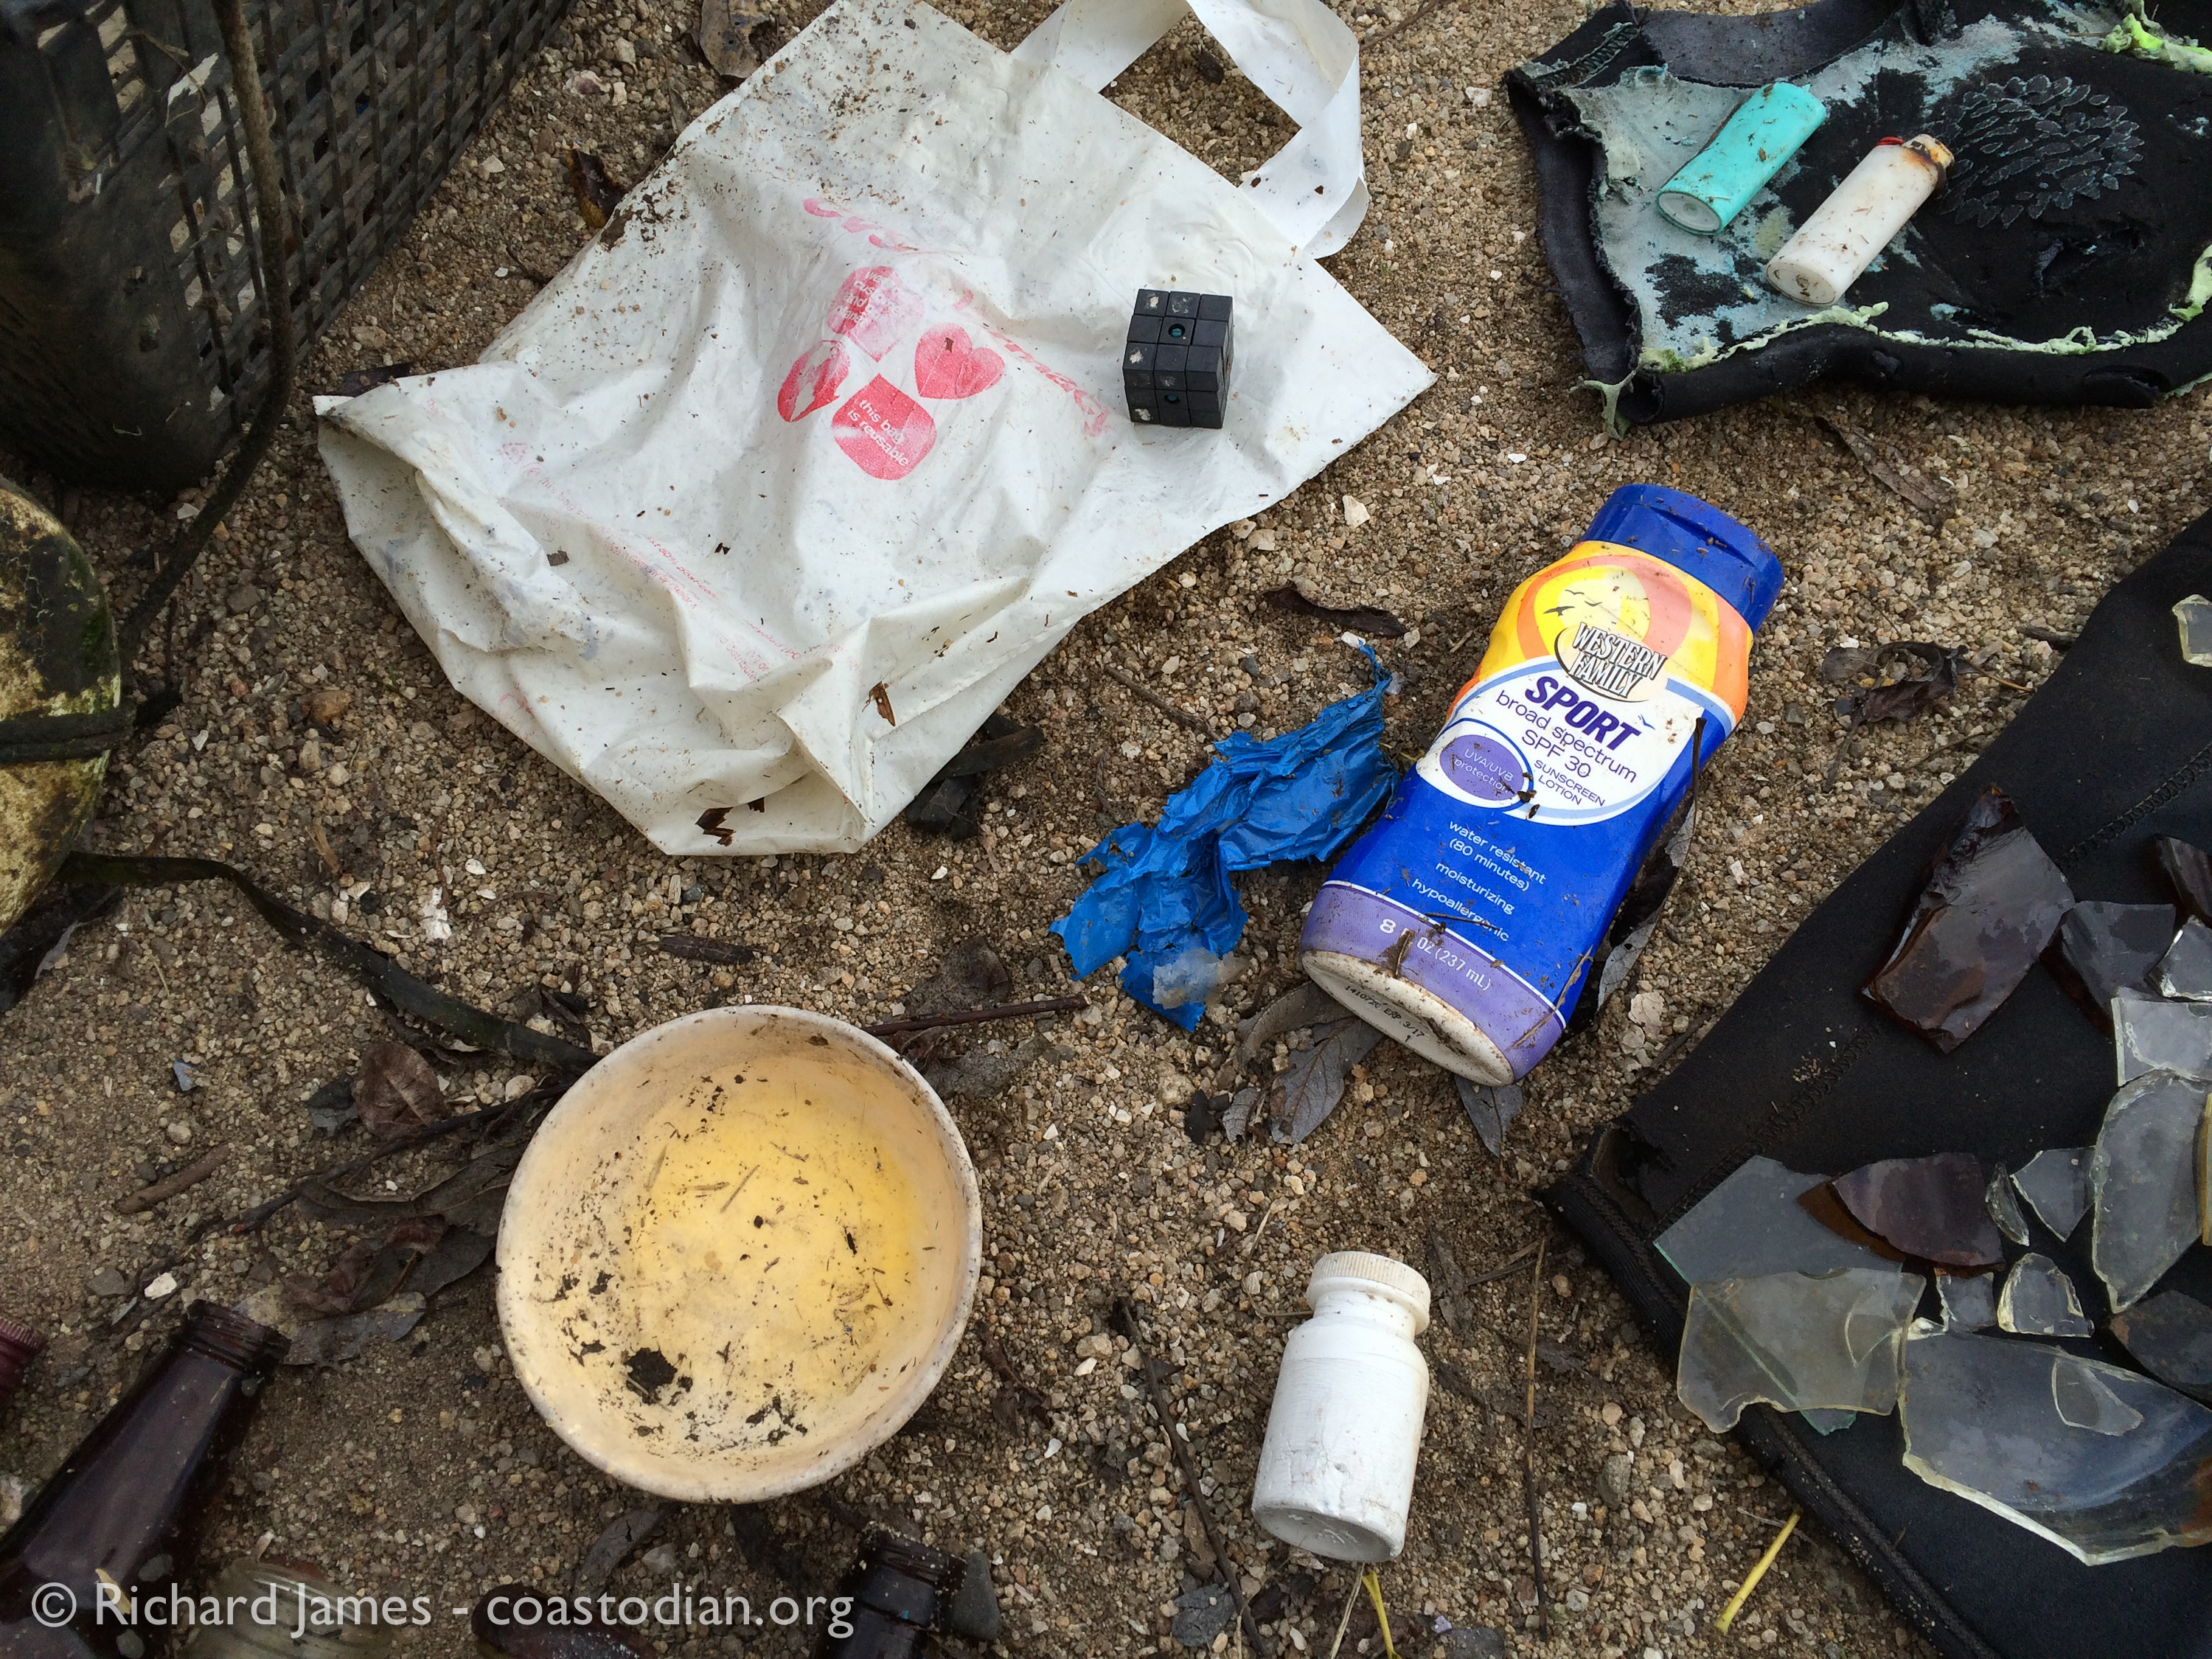 Drugstore shoppers and skin protectors litter in Tomales Bay ©Richard James coastodian.org